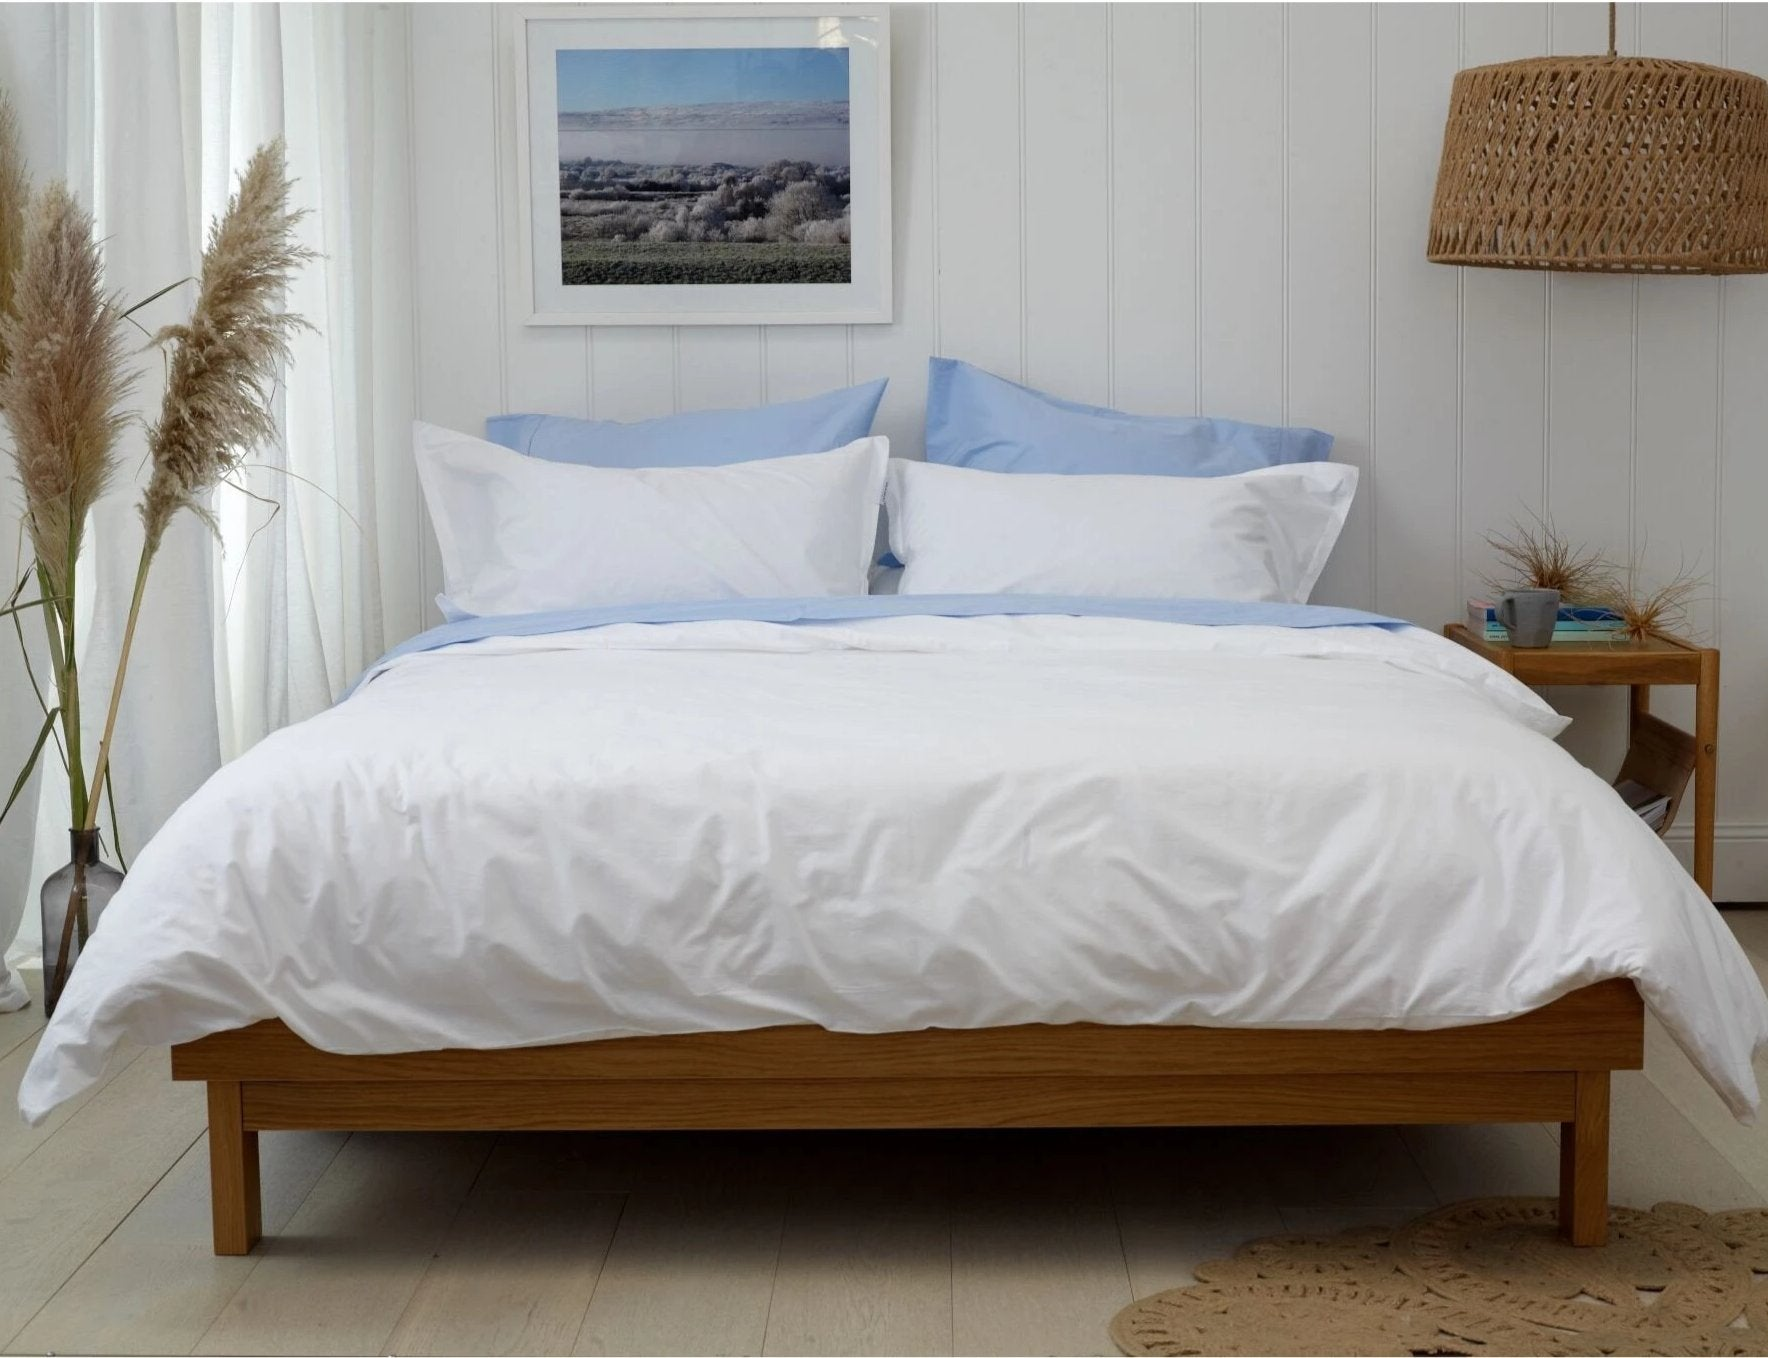 CITY BEACH - DREAM SET - Feyrehome Australia.  Bedlinen Bundle Buy.  100% extra-long staple cotton percale.  300TC.  Free shipping Australia.  Afterpay and ZipPay